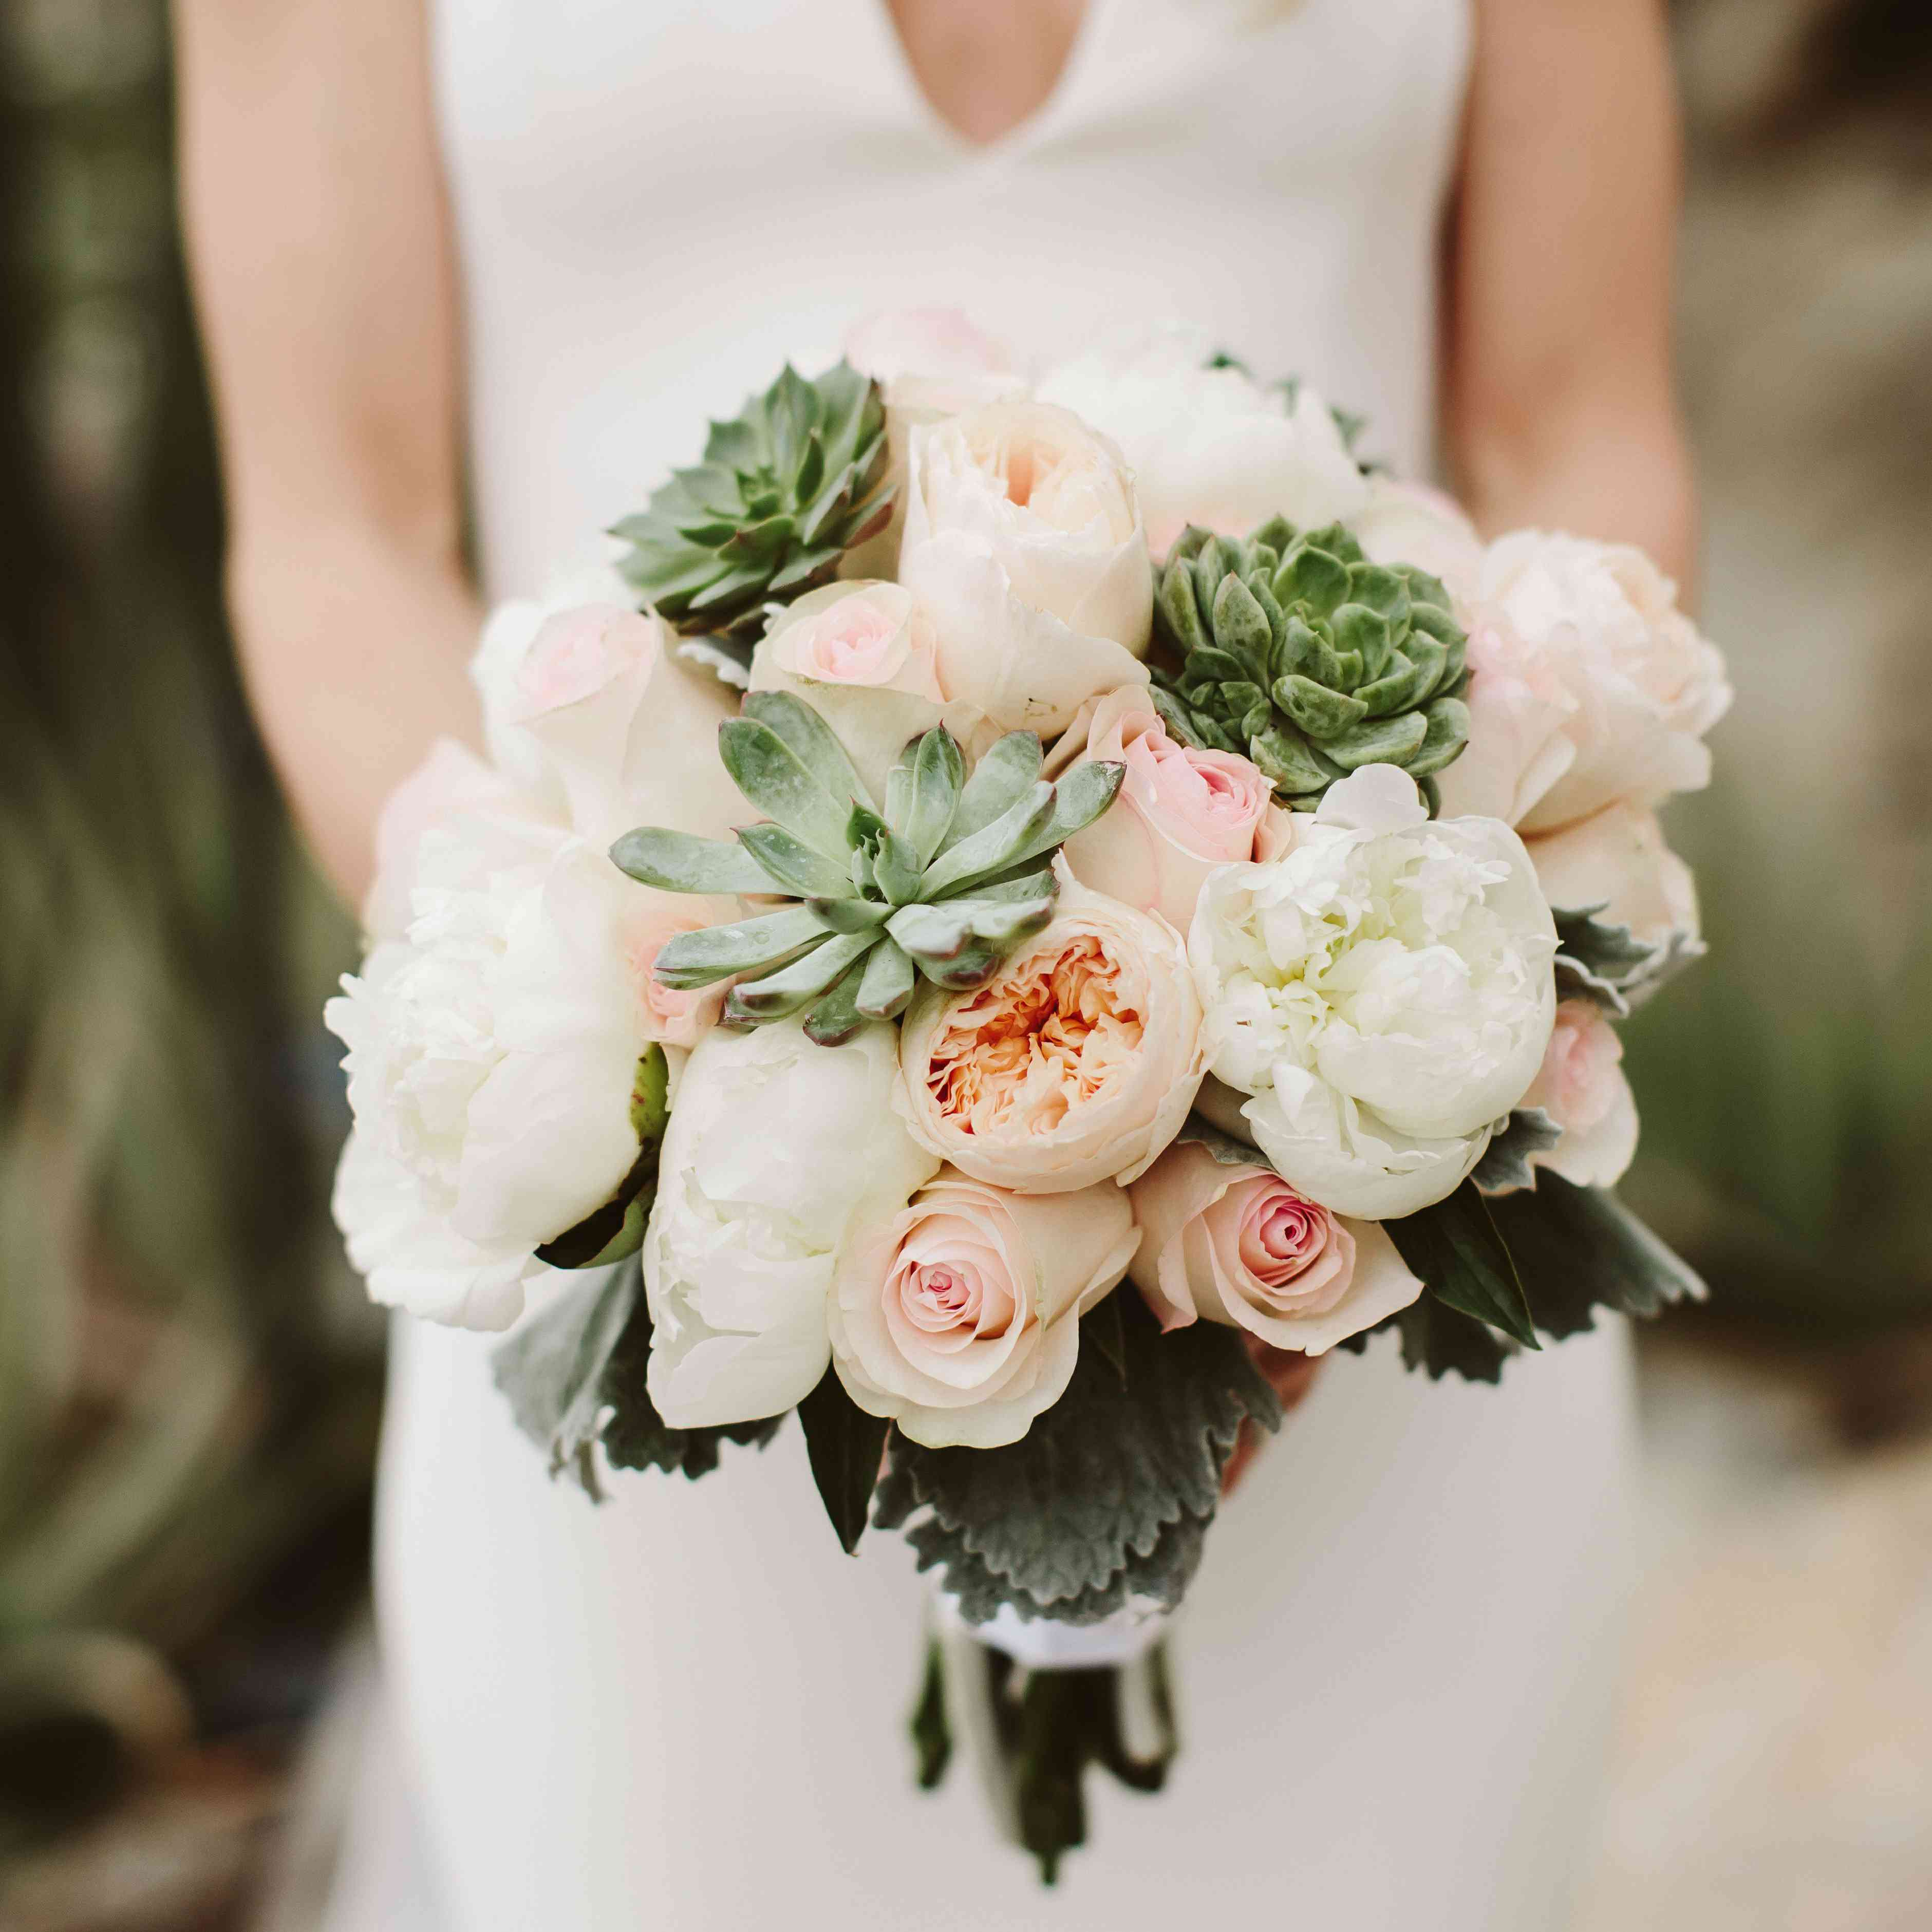 Light pink, white, and peach bouquet with succulents